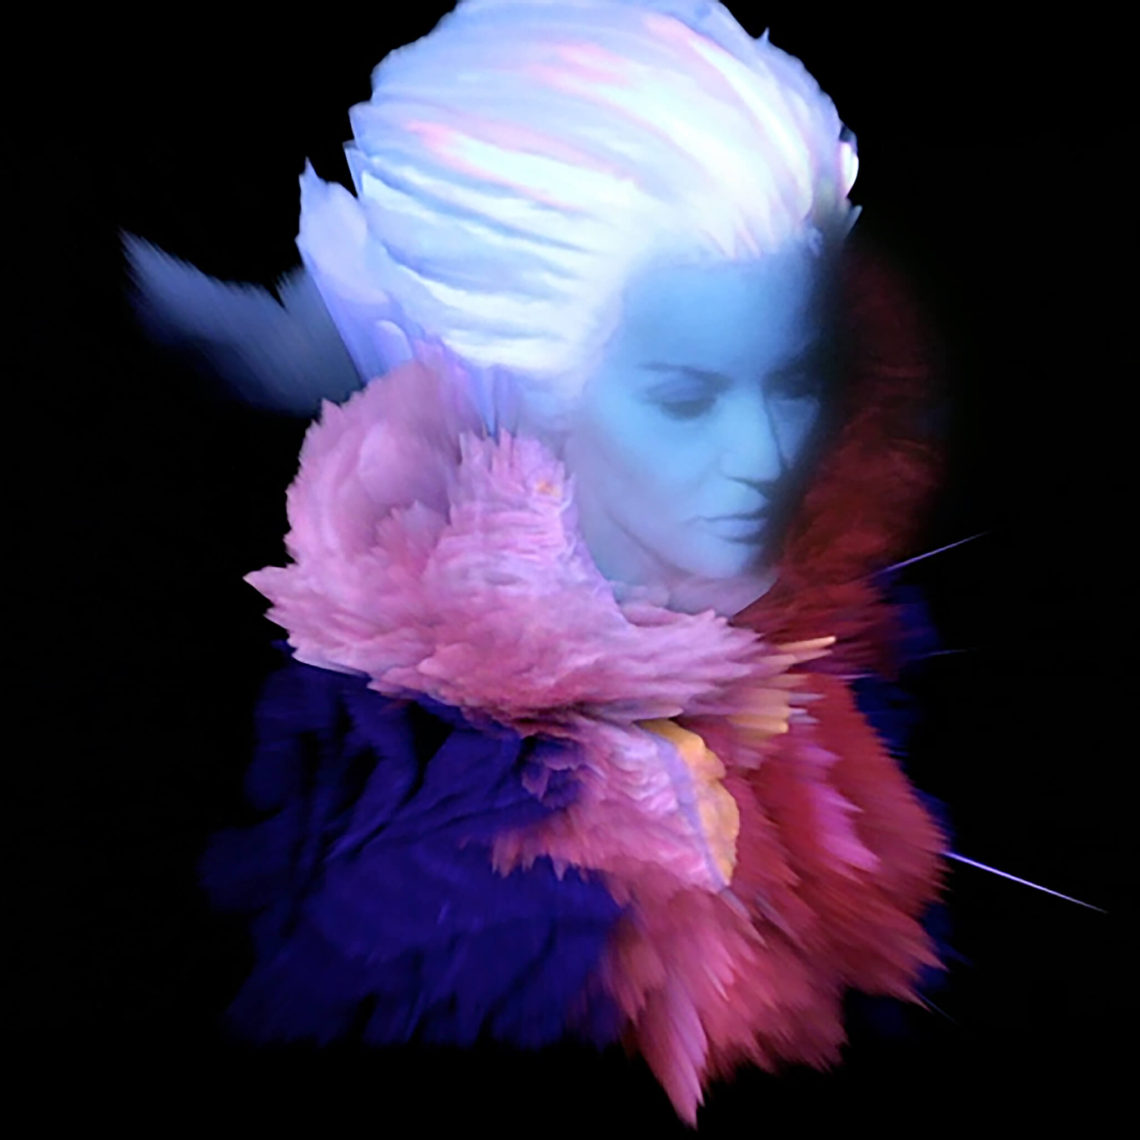 Mintsquare_It-Takes-Two-to-Make-the-Fashion-World-Go-Round_Nick-Knight-and-Daphne-Guinness_Visions-Couture_Junya-Watanabe-SHOWstudio-2011_digital-film